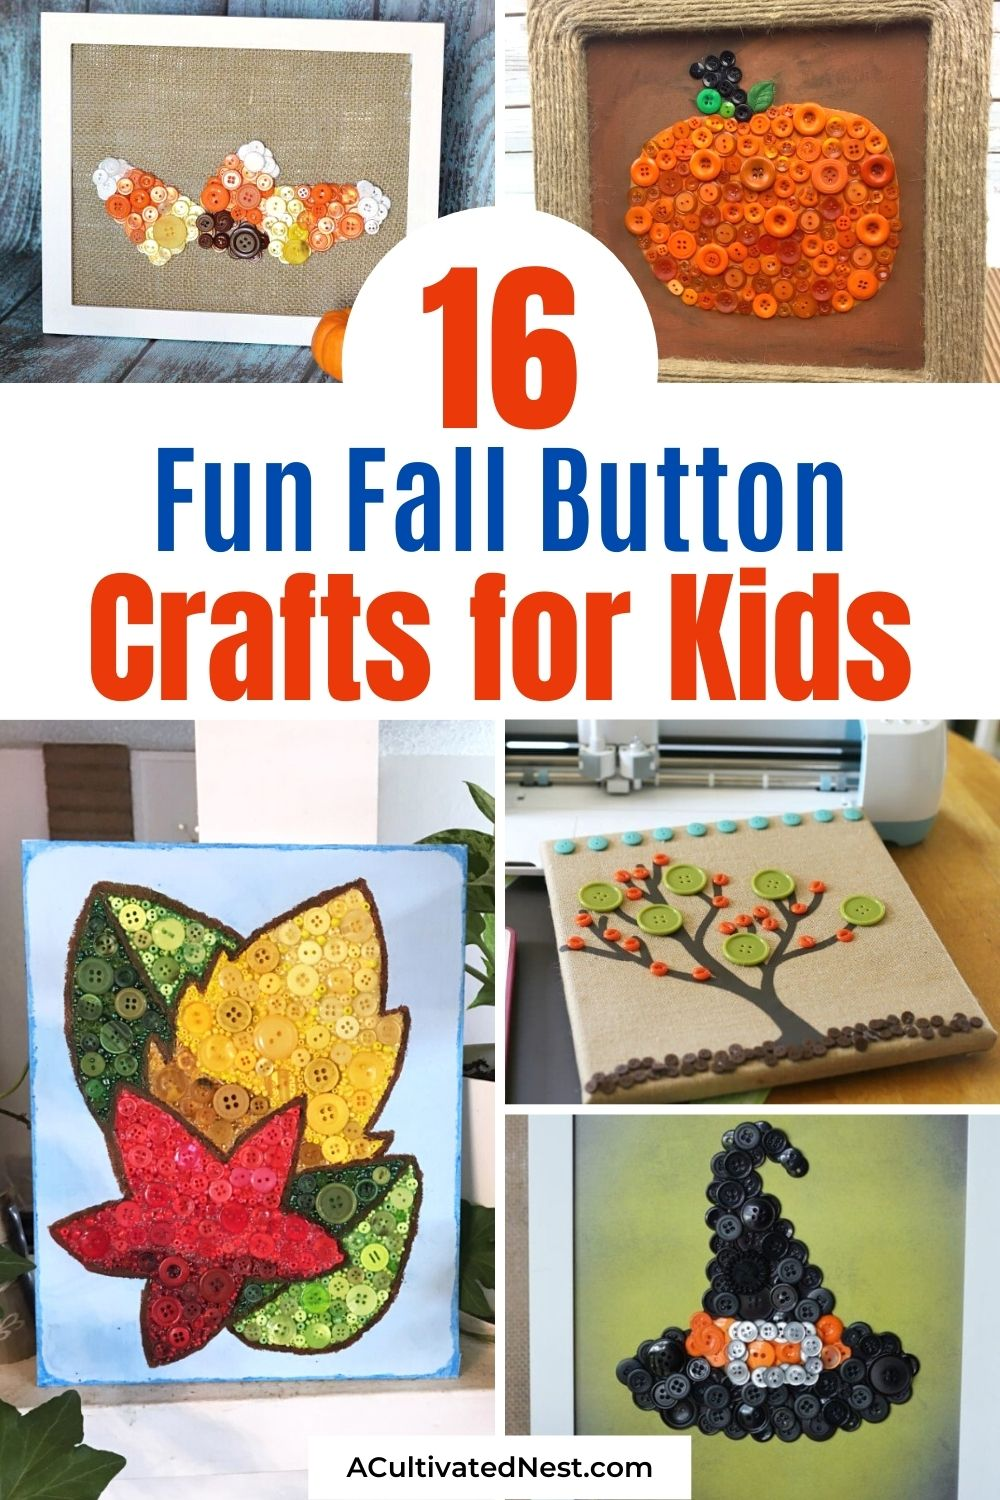 16 Fun Fall Button Crafts For Kids- It'll be easy to keep your kids busy this fall on a budget with these fun fall button crafts for kids! There are so many fun autumn DIY button projects they can do! | Halloween kids crafts, Thanksgiving kids crafts, #kidsCraft #buttonCrafts #kidsActivity #fallDIYs #ACultivatedNest